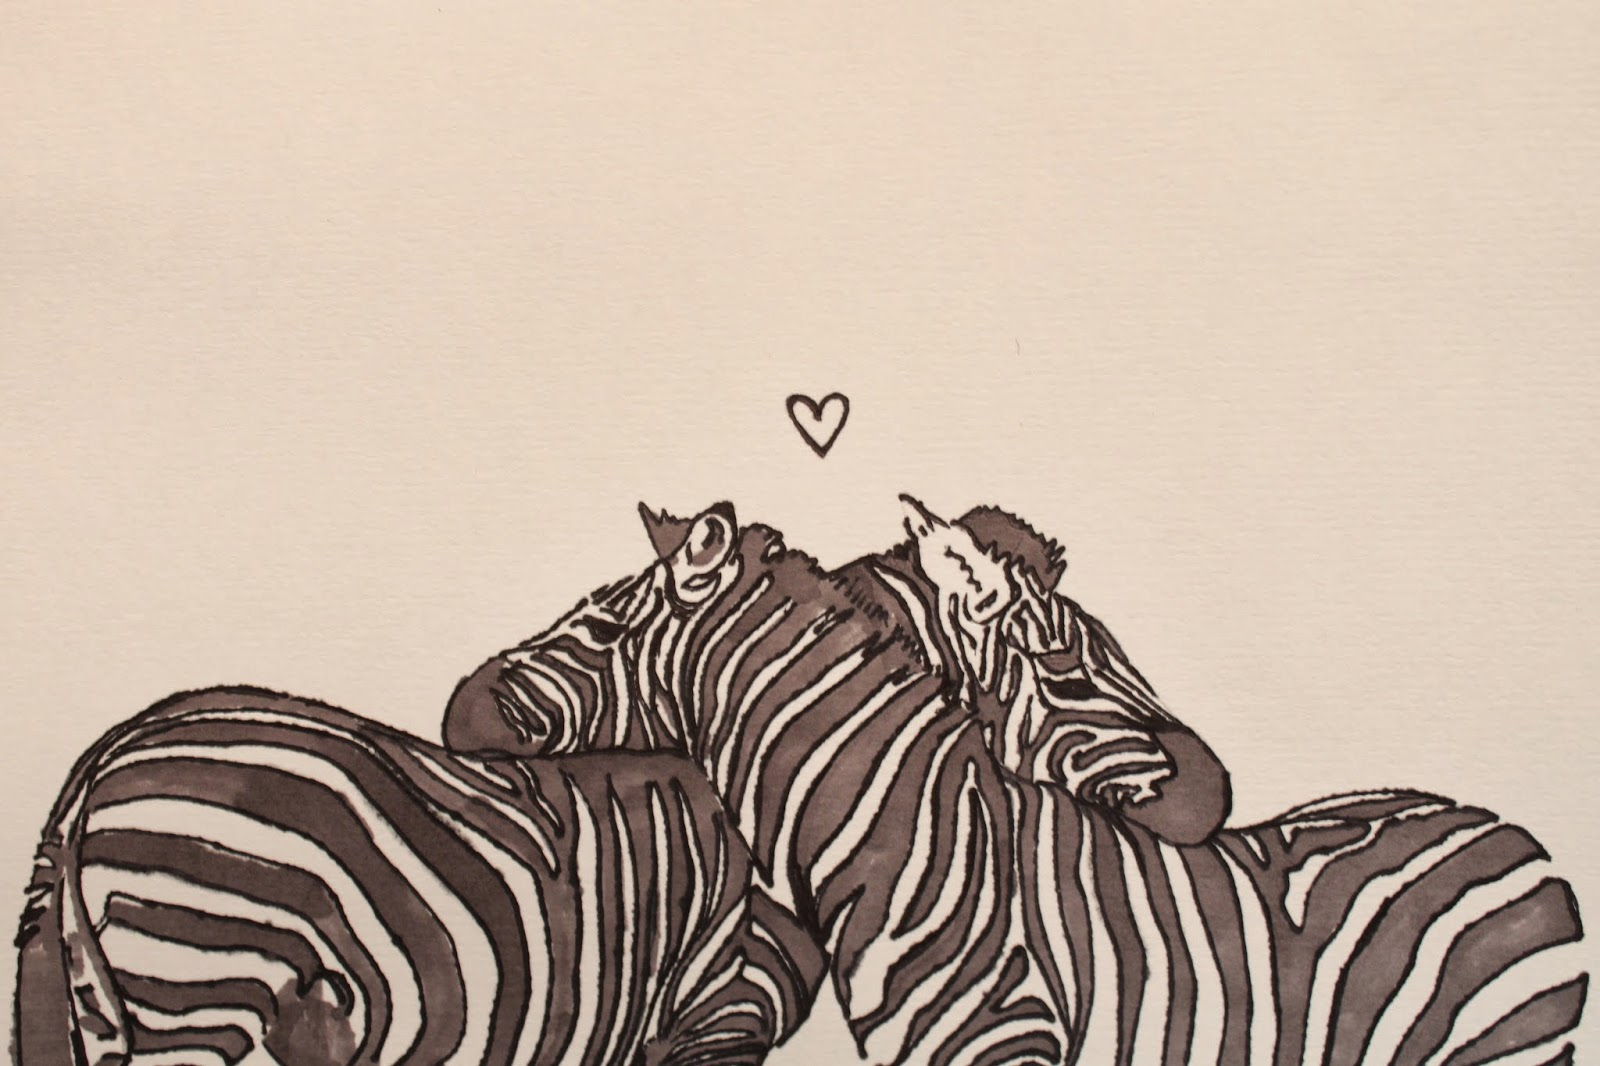 zebra valentine's day card, zebras hugging, illustration